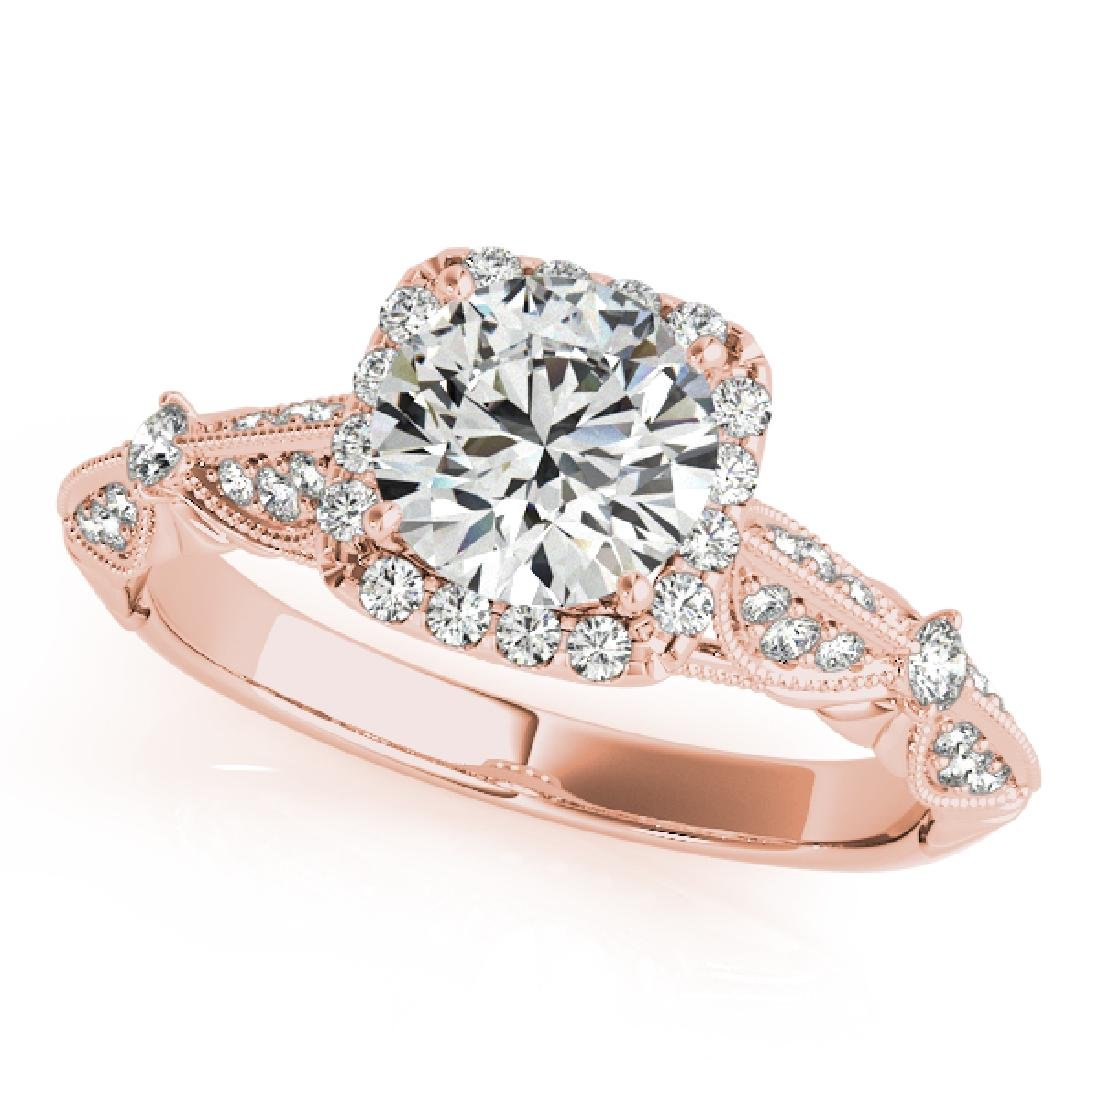 CERTIFIED 18K ROSE GOLD 1.31 CT G-H/VS-SI1 DIAMOND HALO